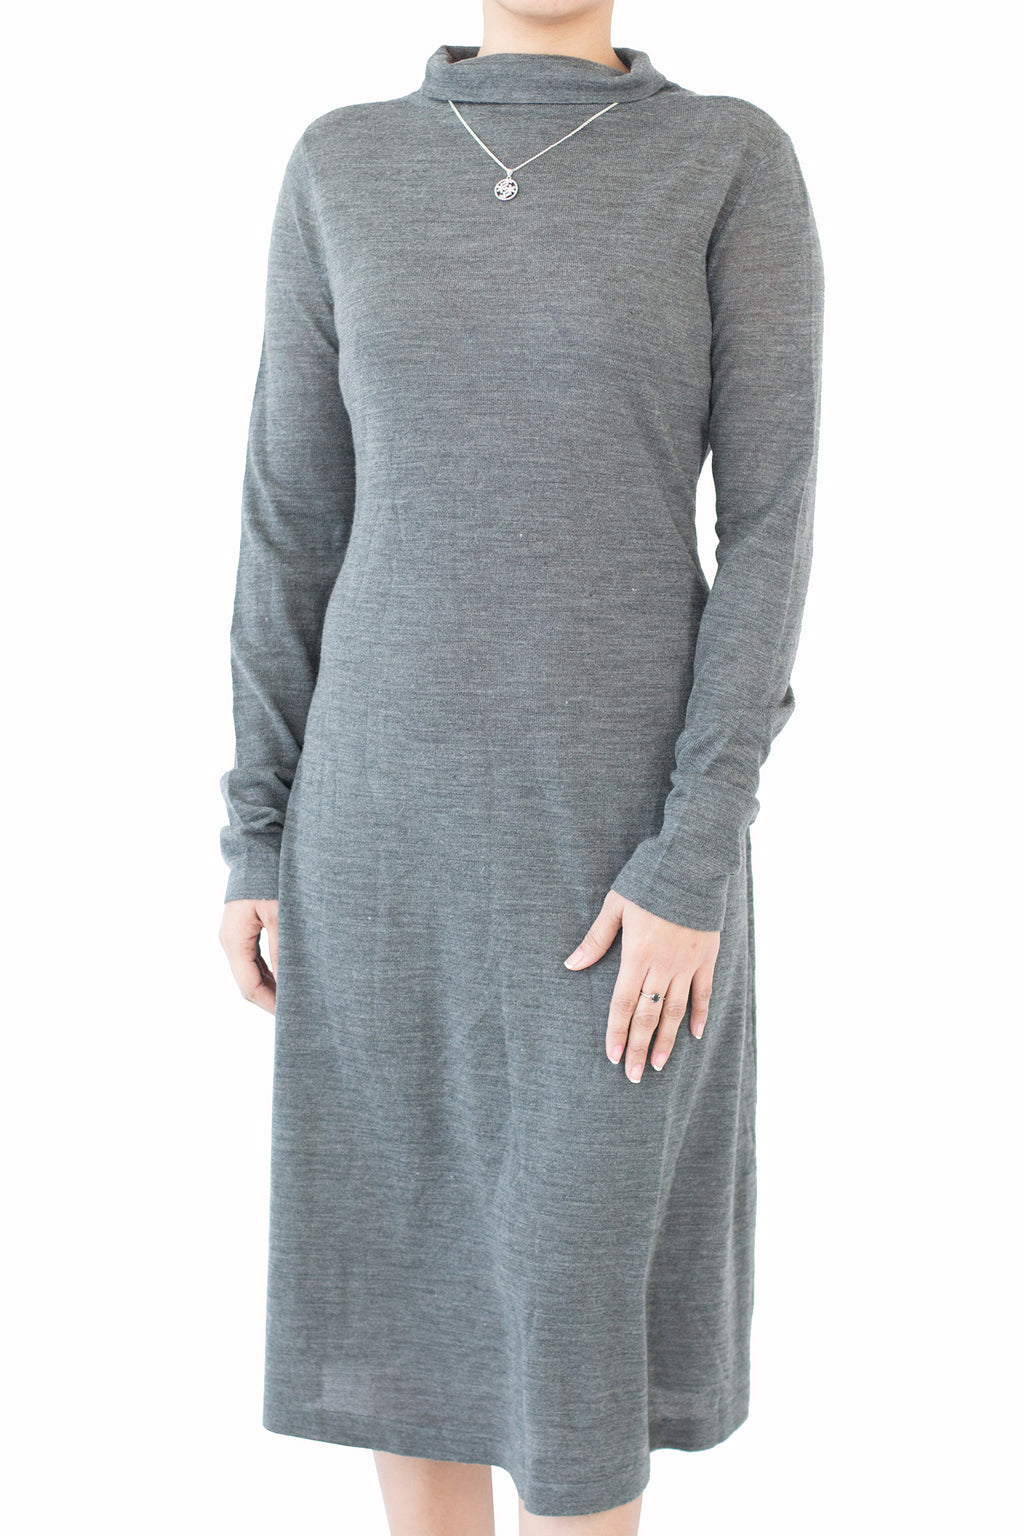 Kiswah - Dark Grey Turtle Neck Dress With Belt